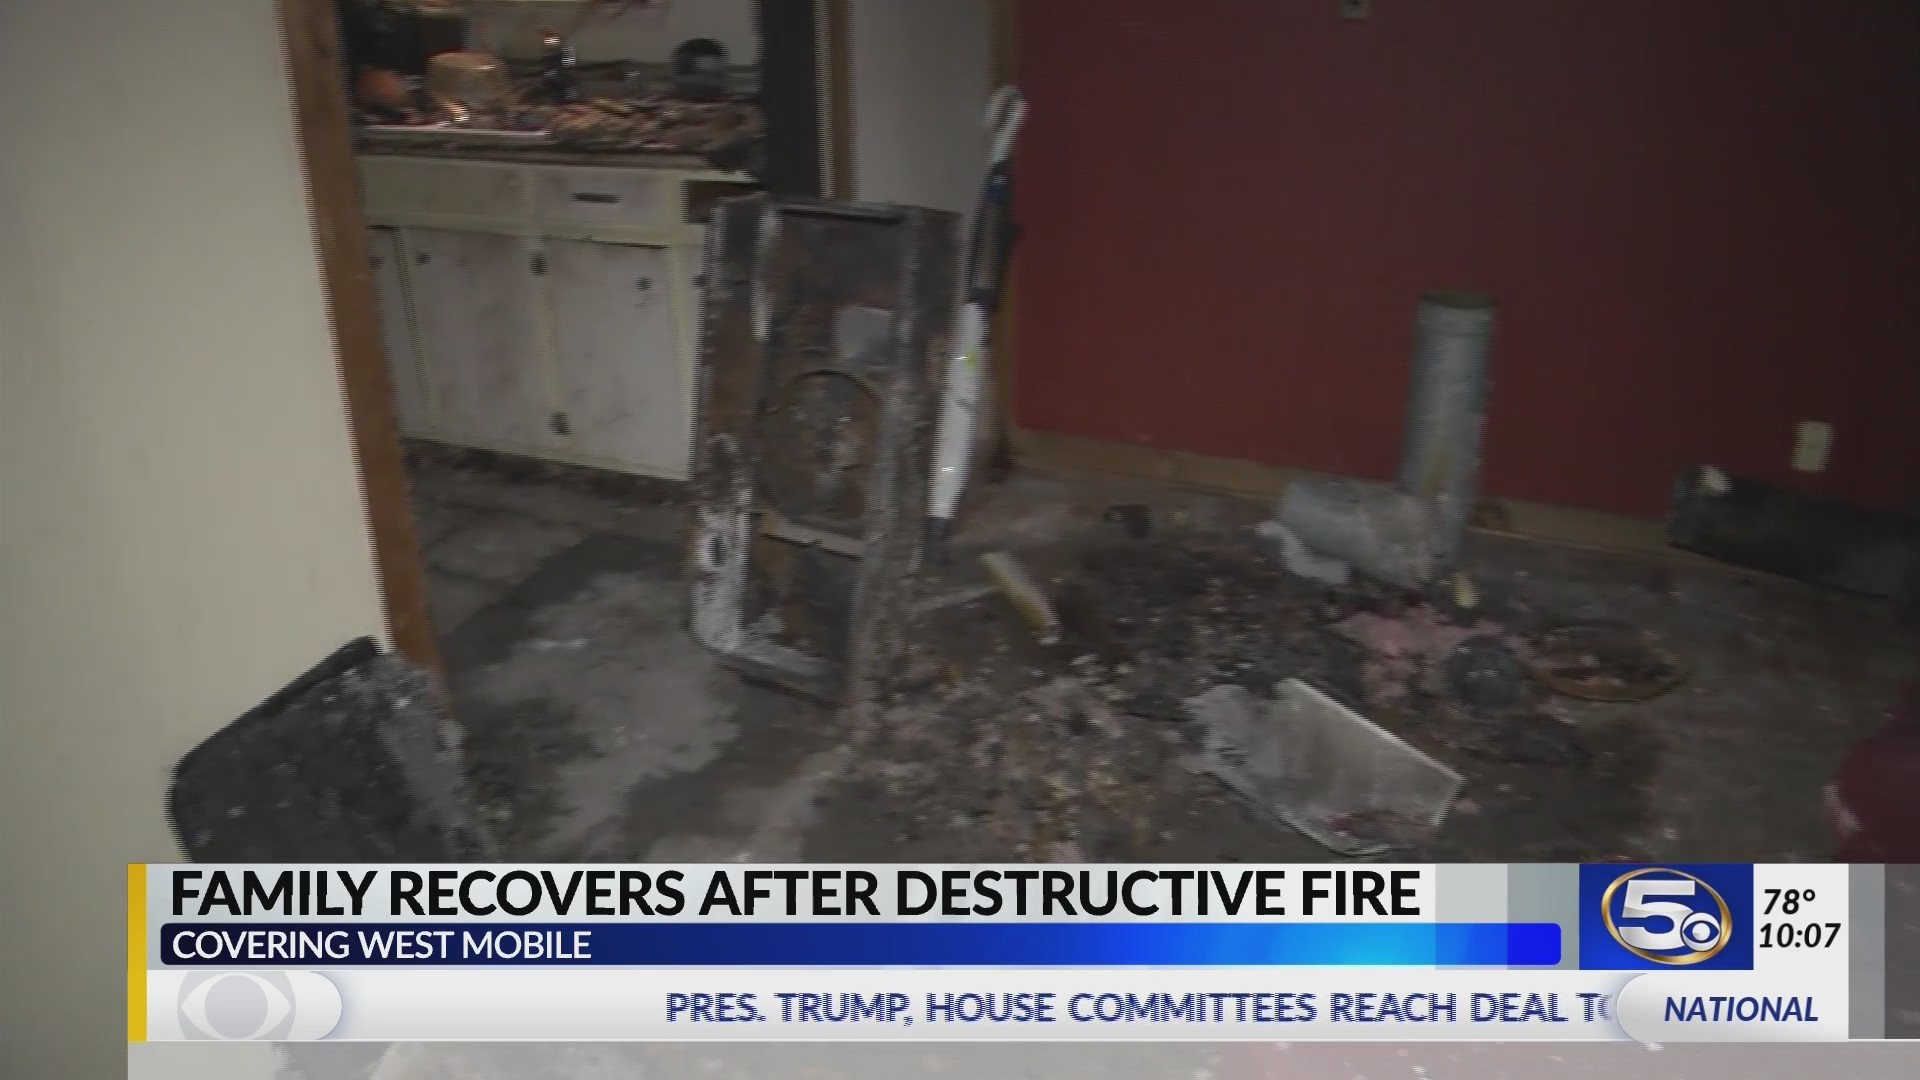 Mobile family continues to recover following destructive fire